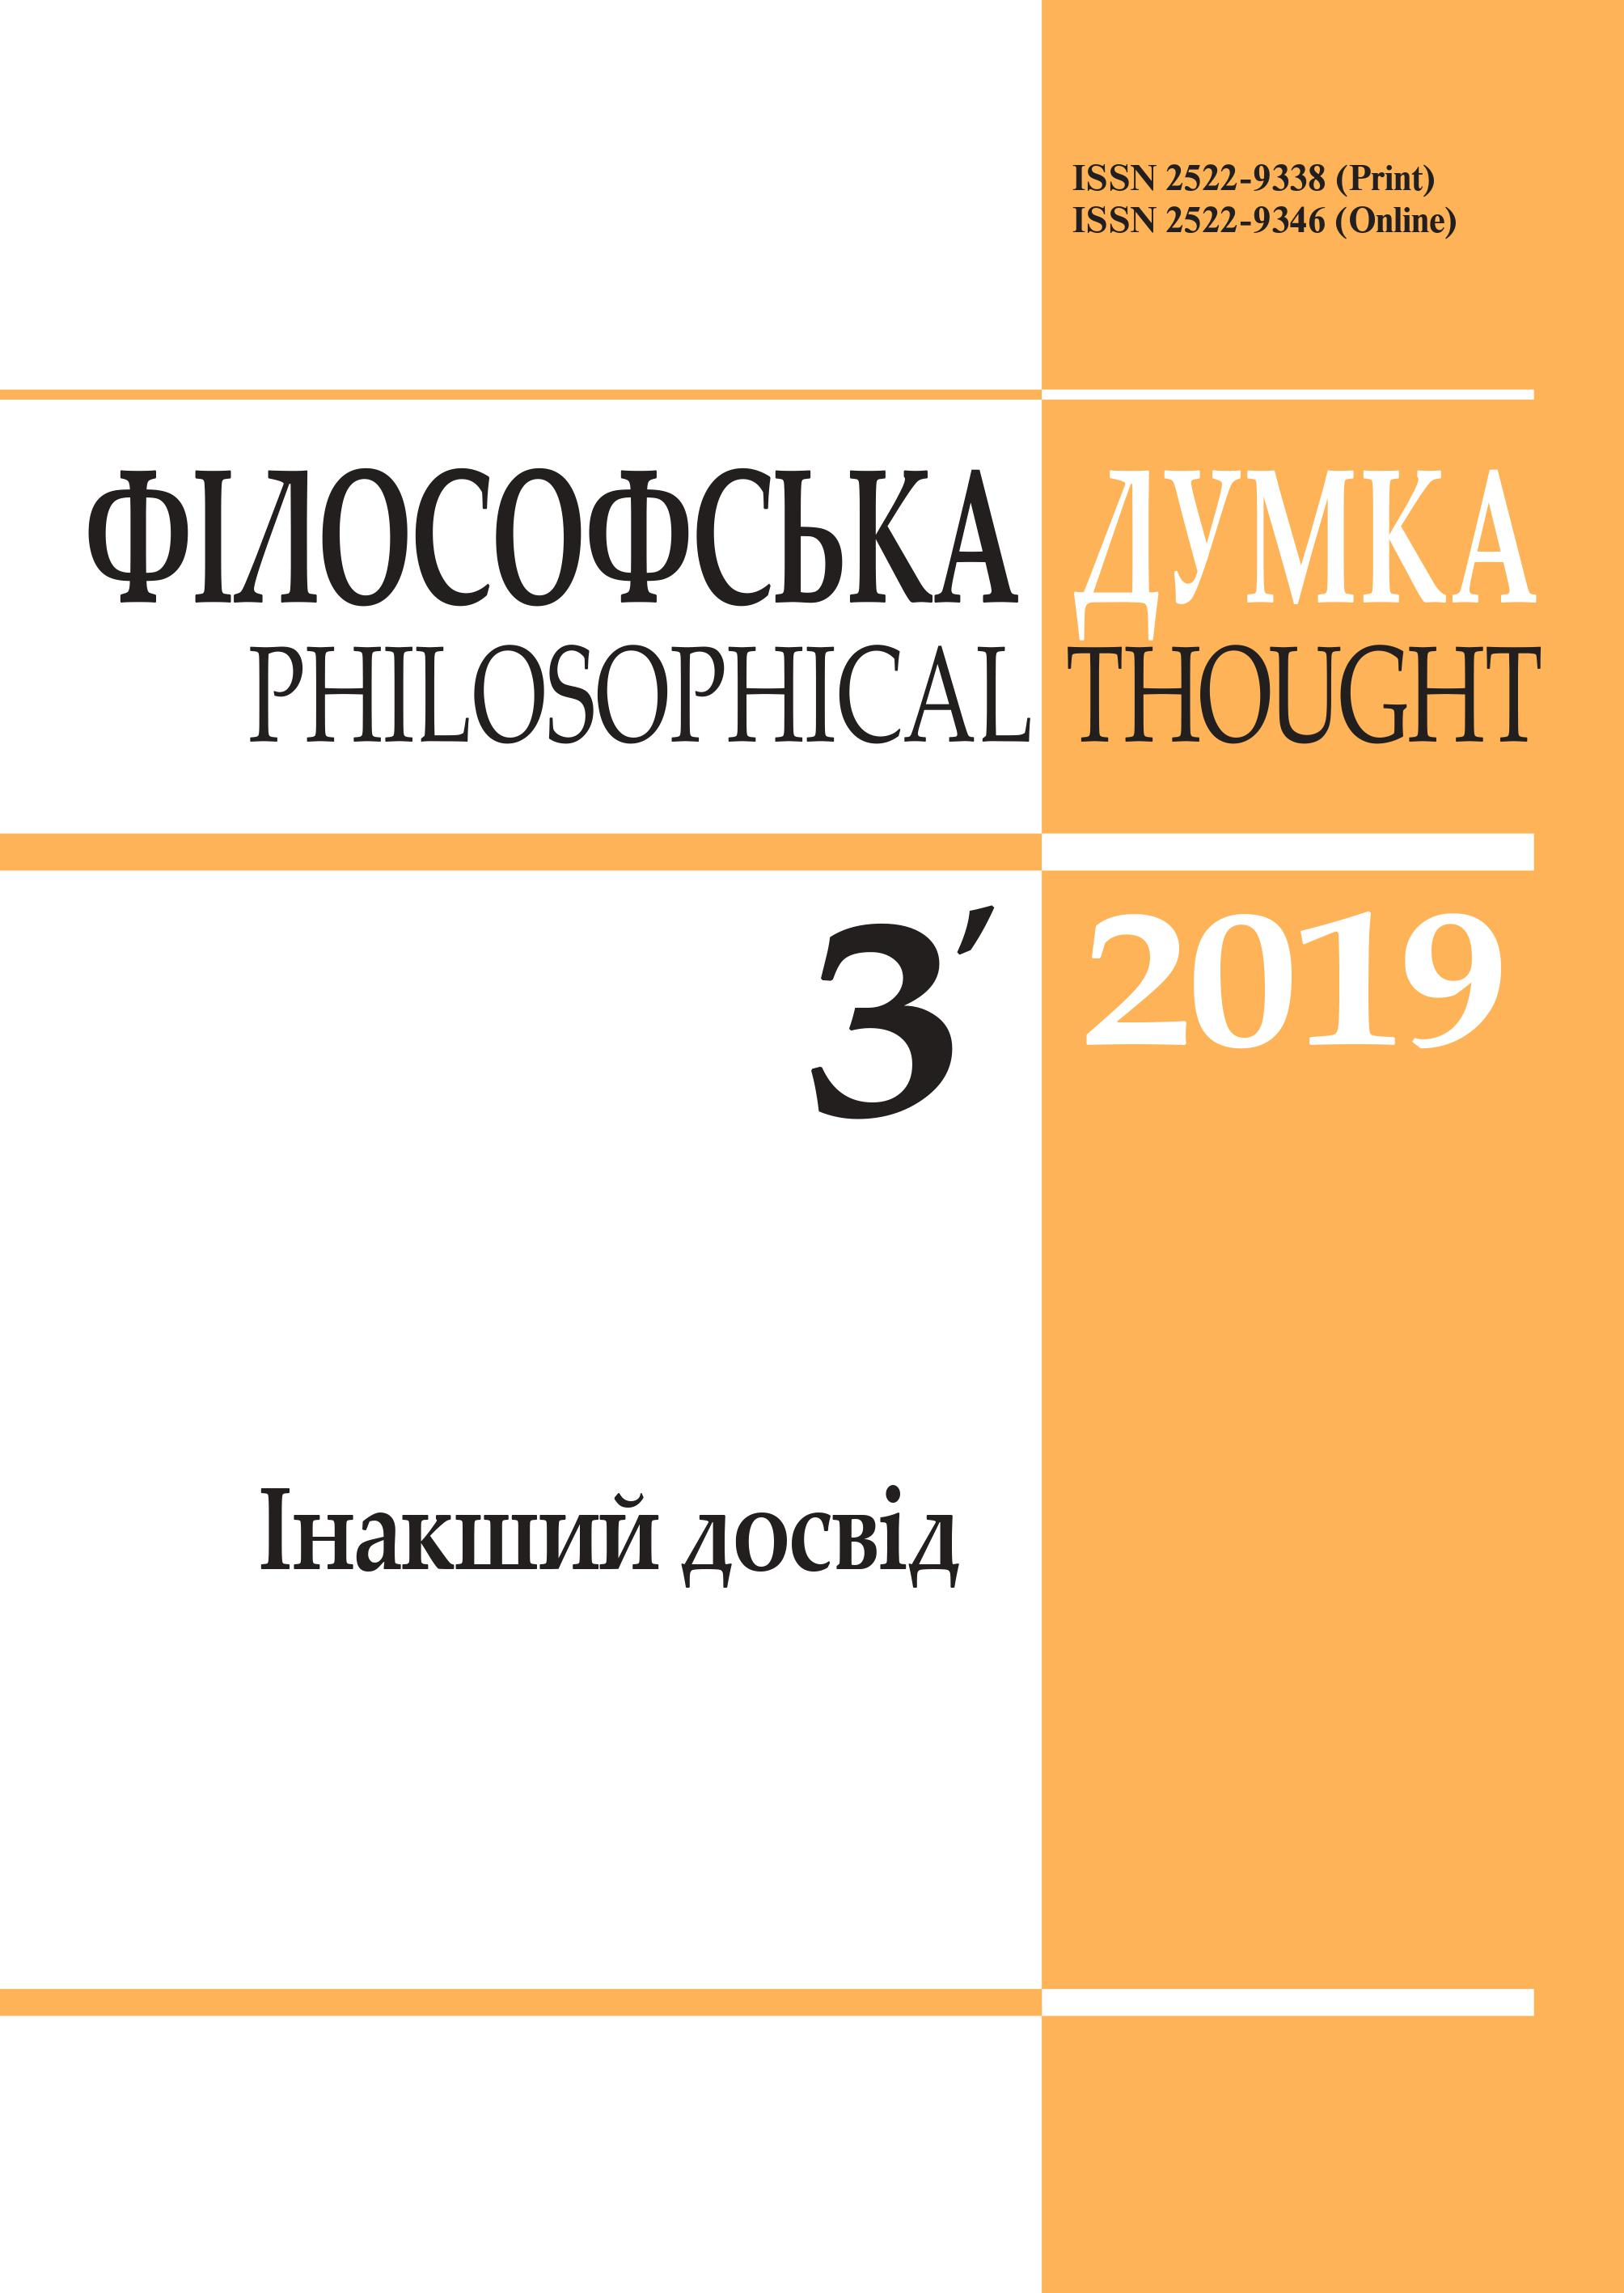 View No. 3 (2019): Philosophical thought